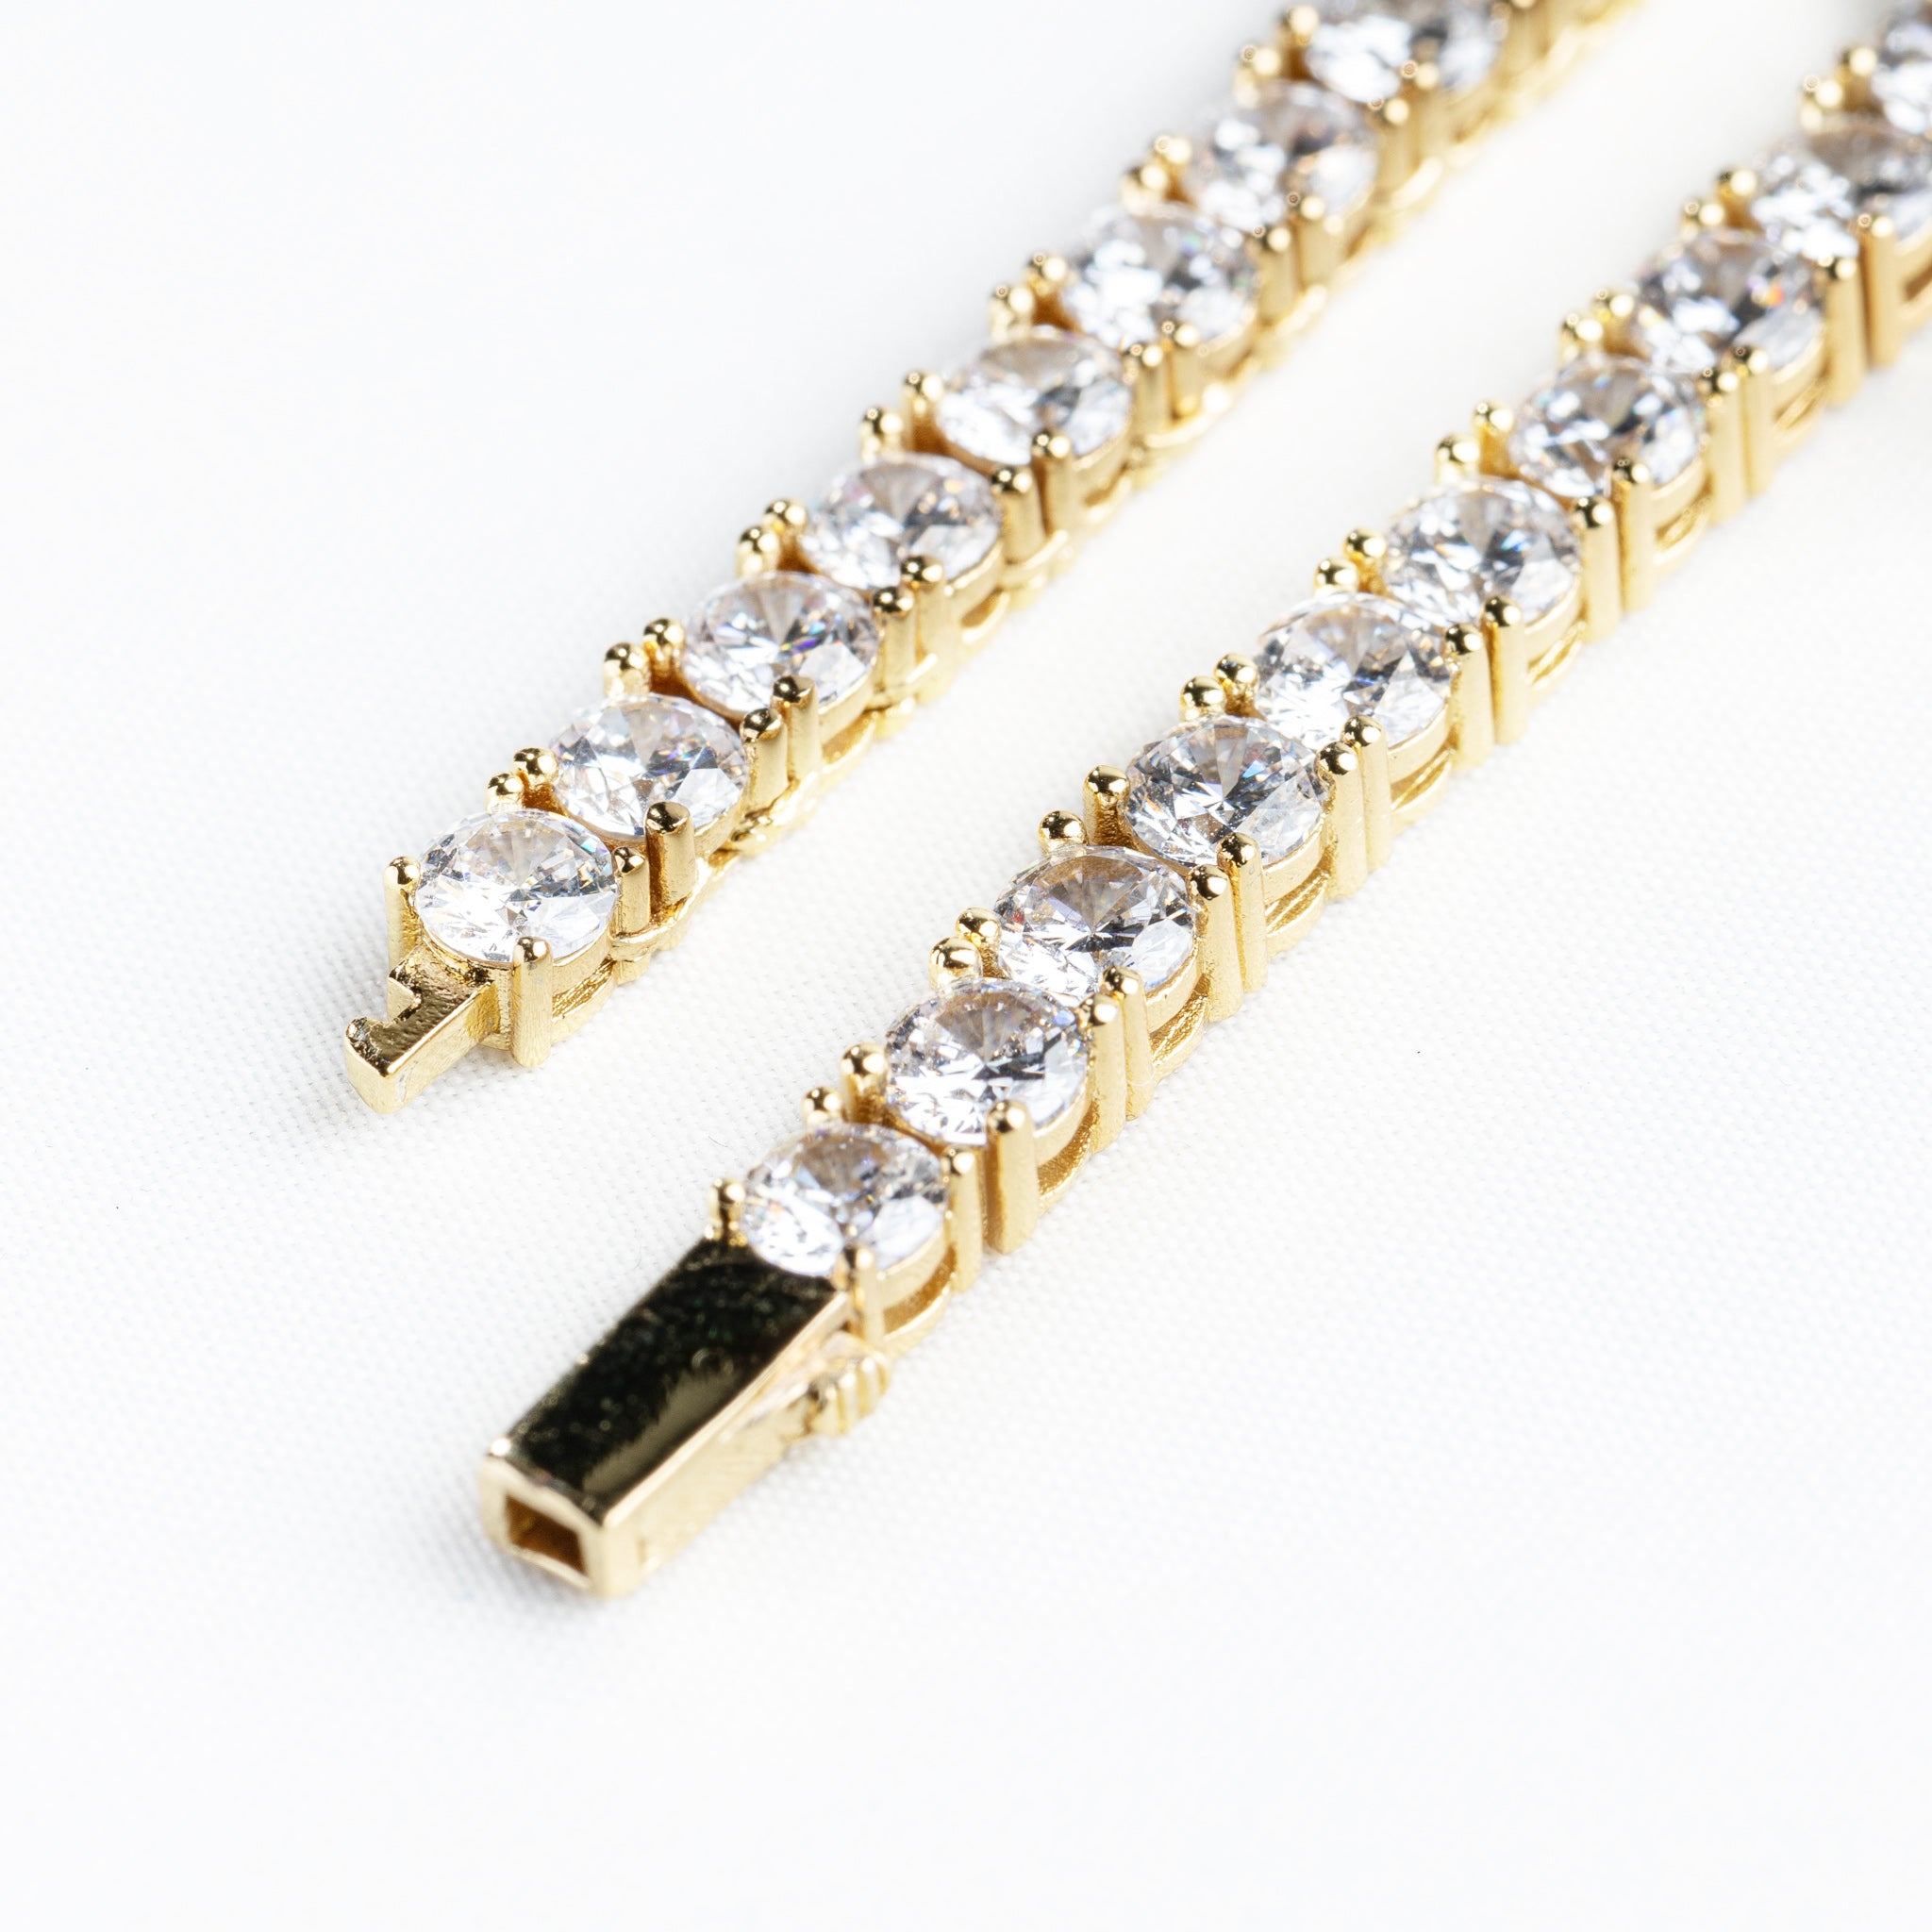 4mm 18K Gold Plated Tennis Chain